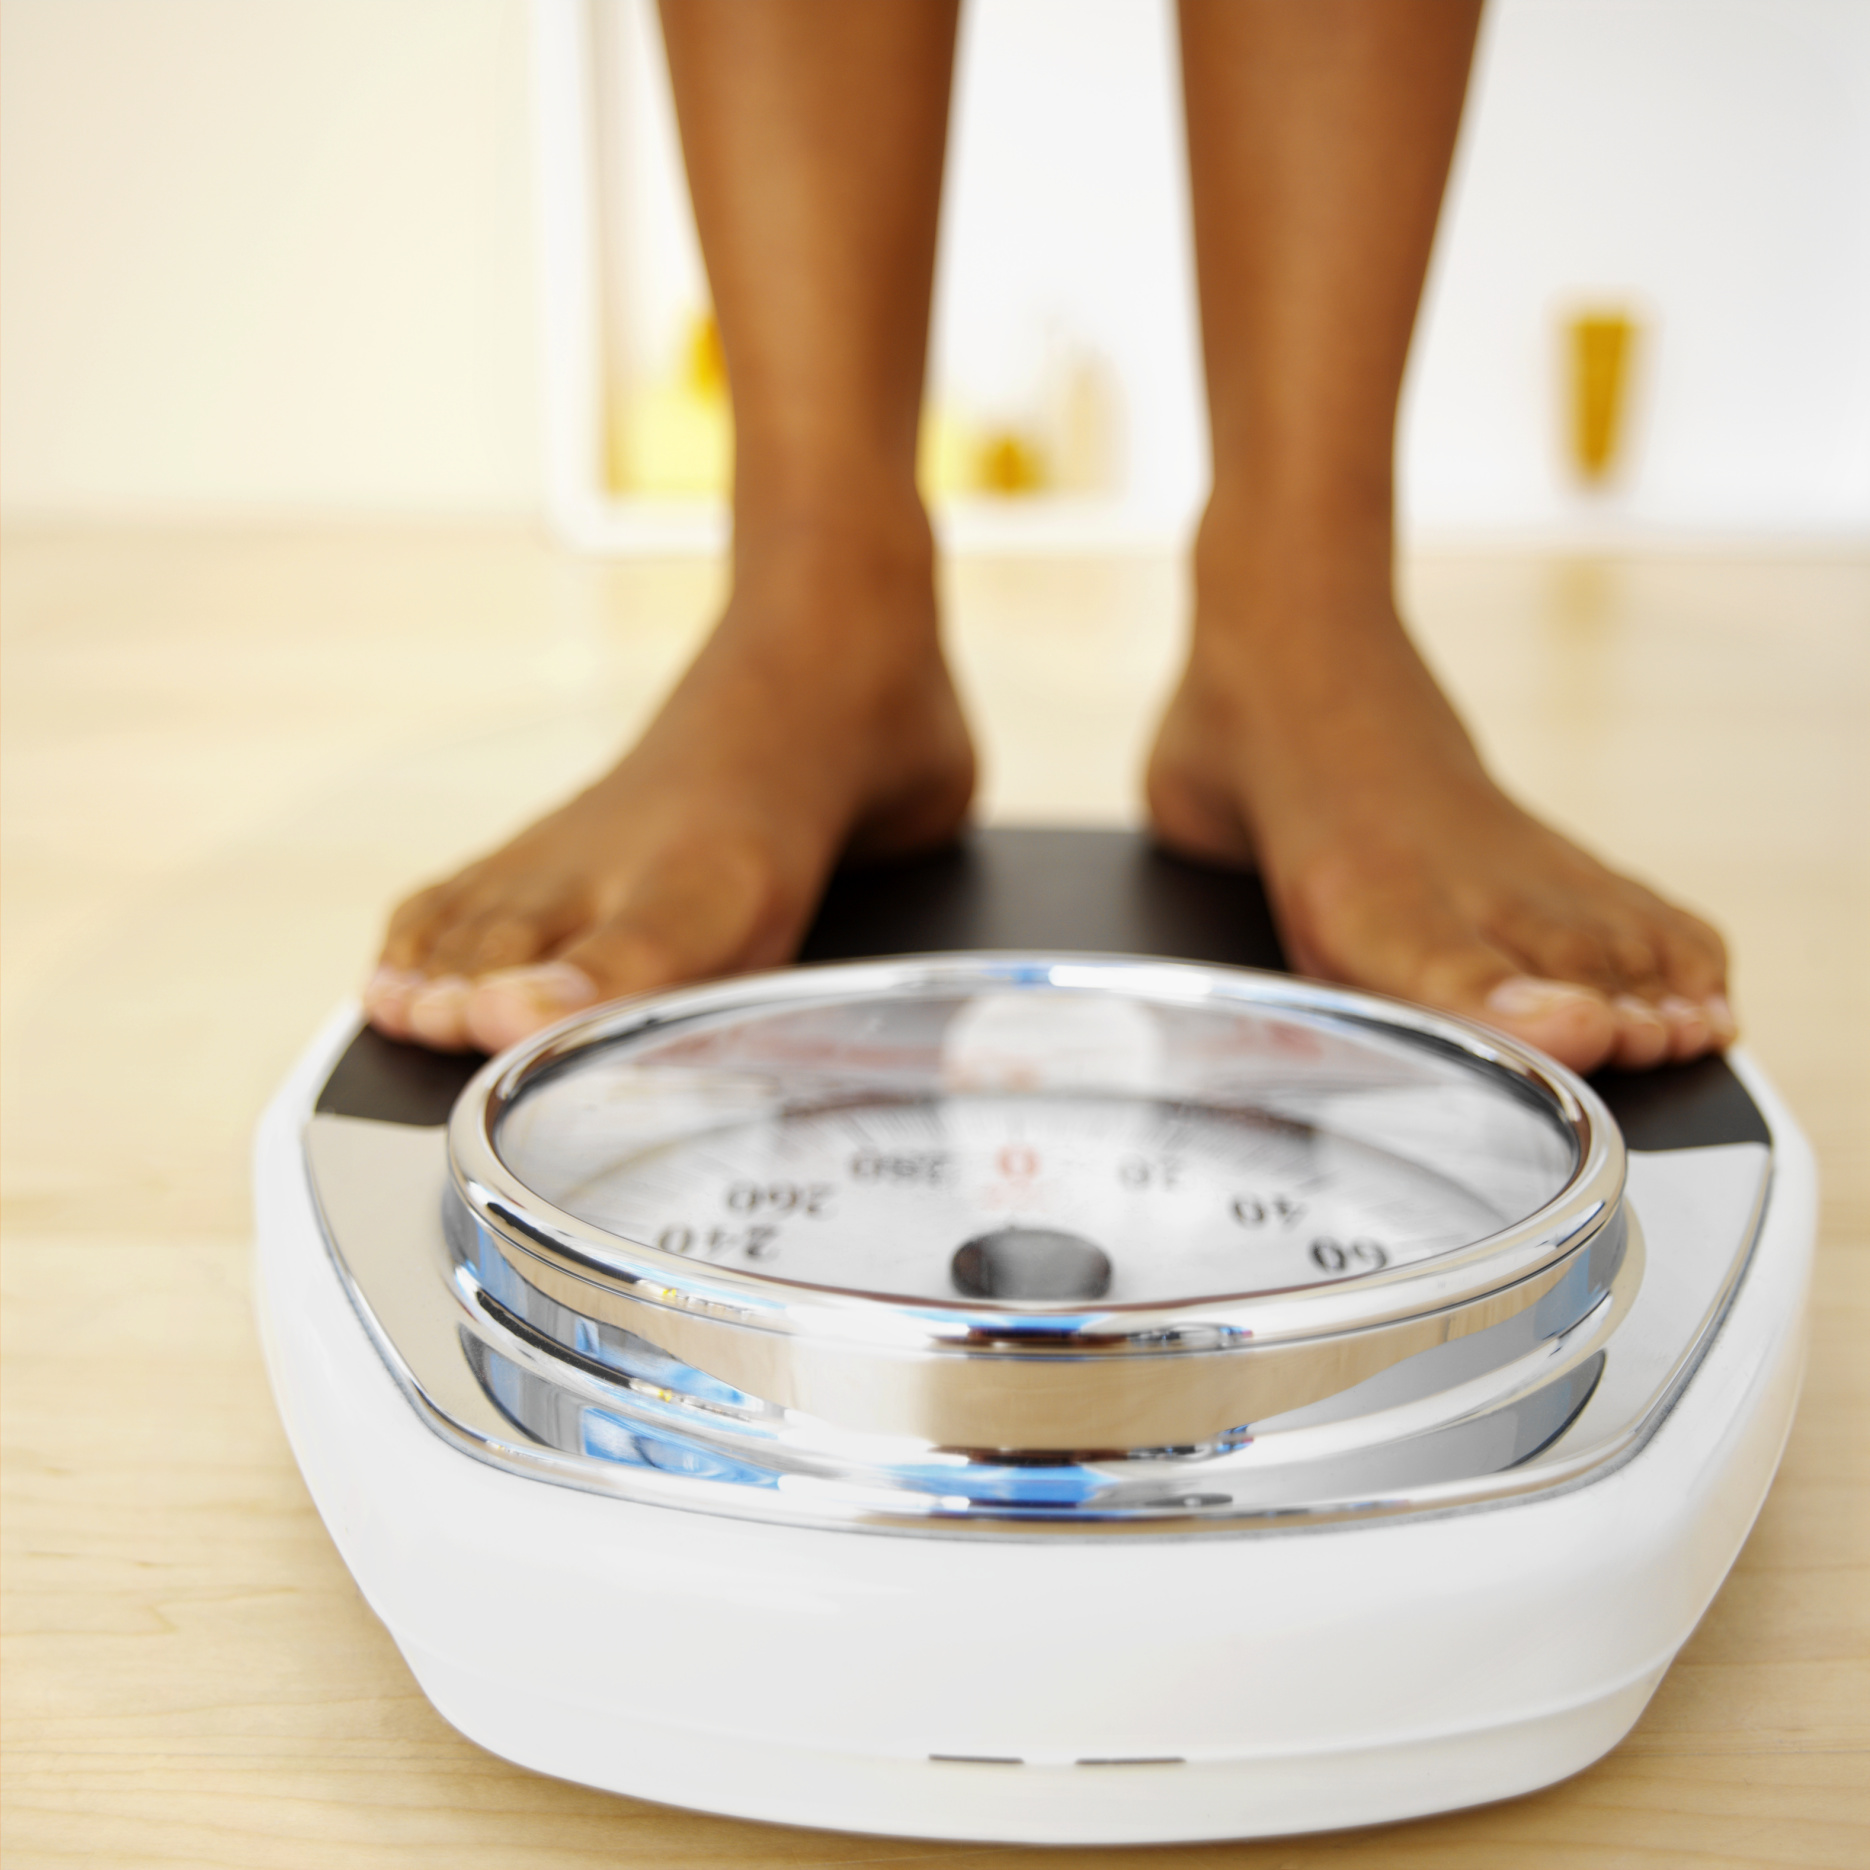 Could Toxins Be Affecting Your Weight Loss?